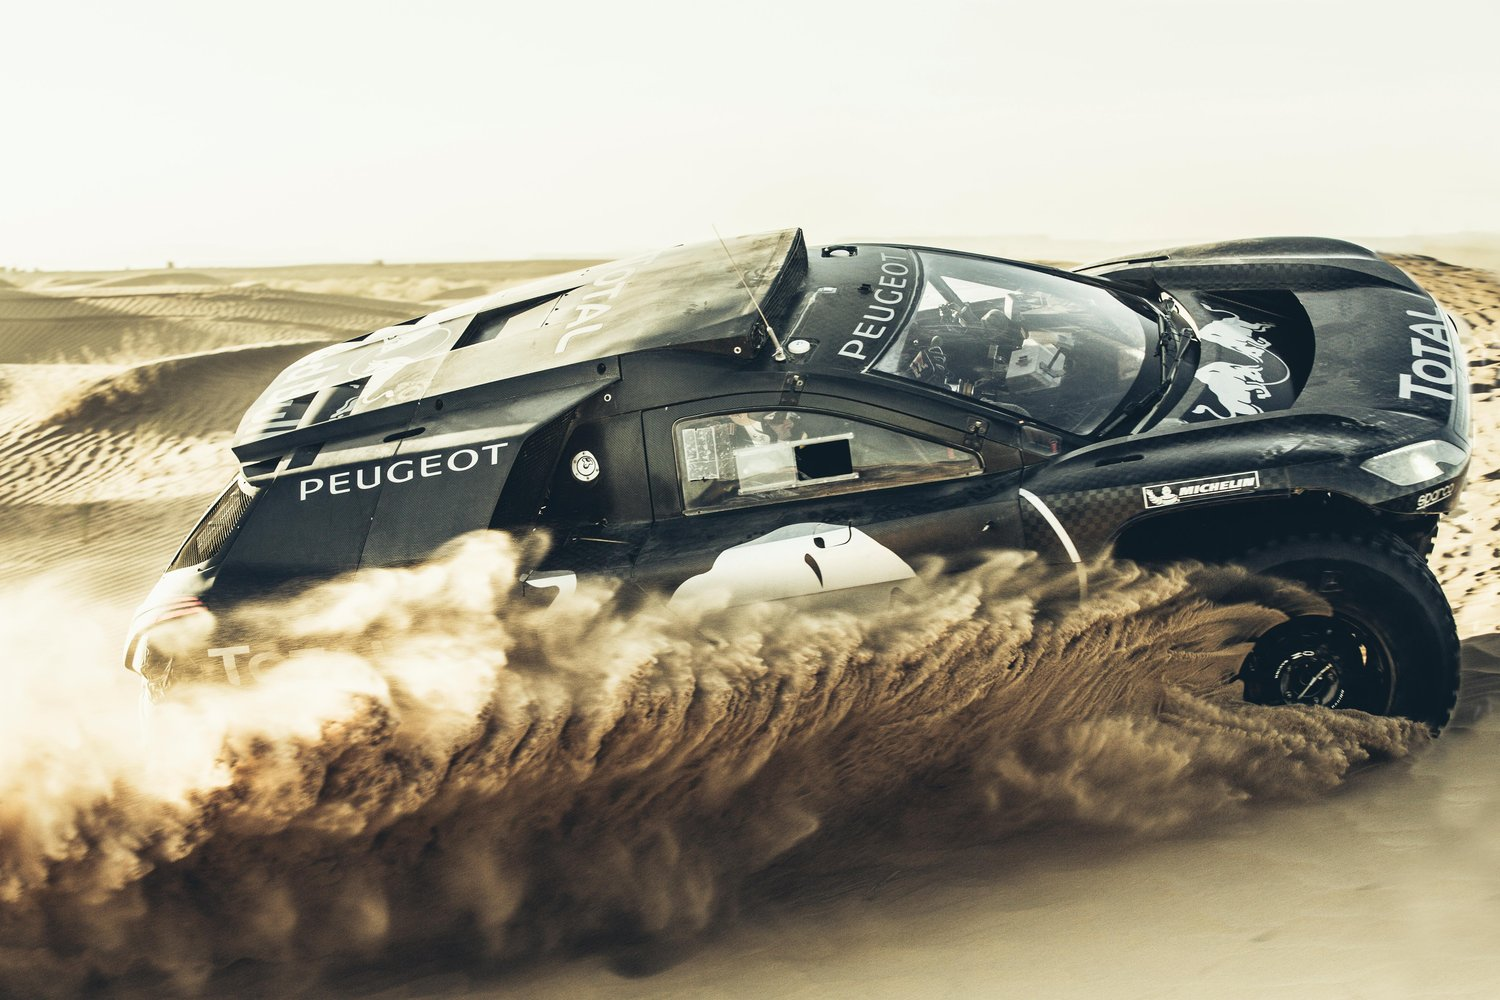 Peugeot 2008 DKR16 version using in 2016 Dakar Photo: RedBull